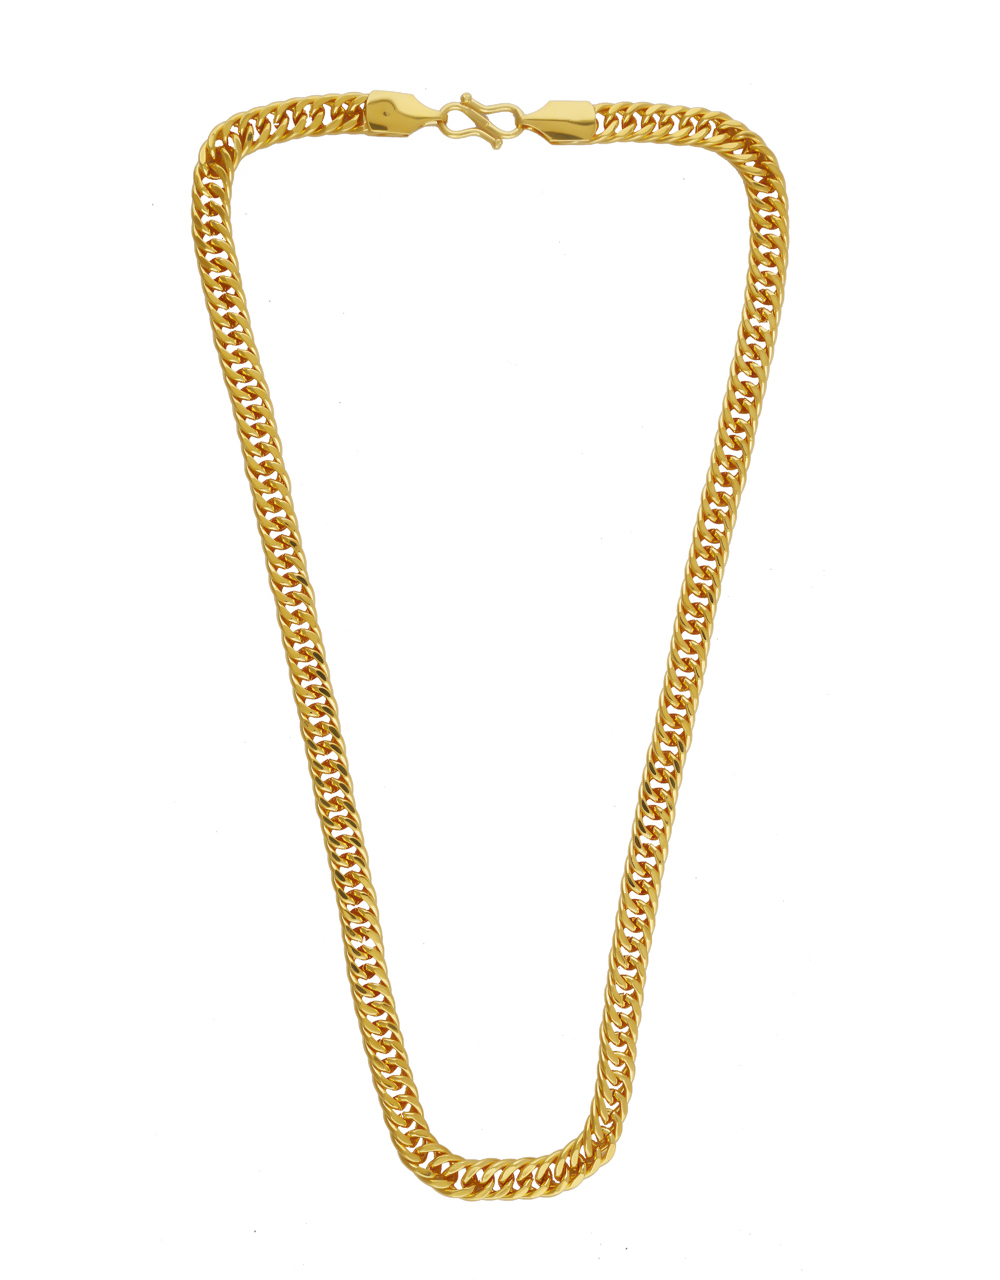 Antique Gold Finish Chain For Mens Wear